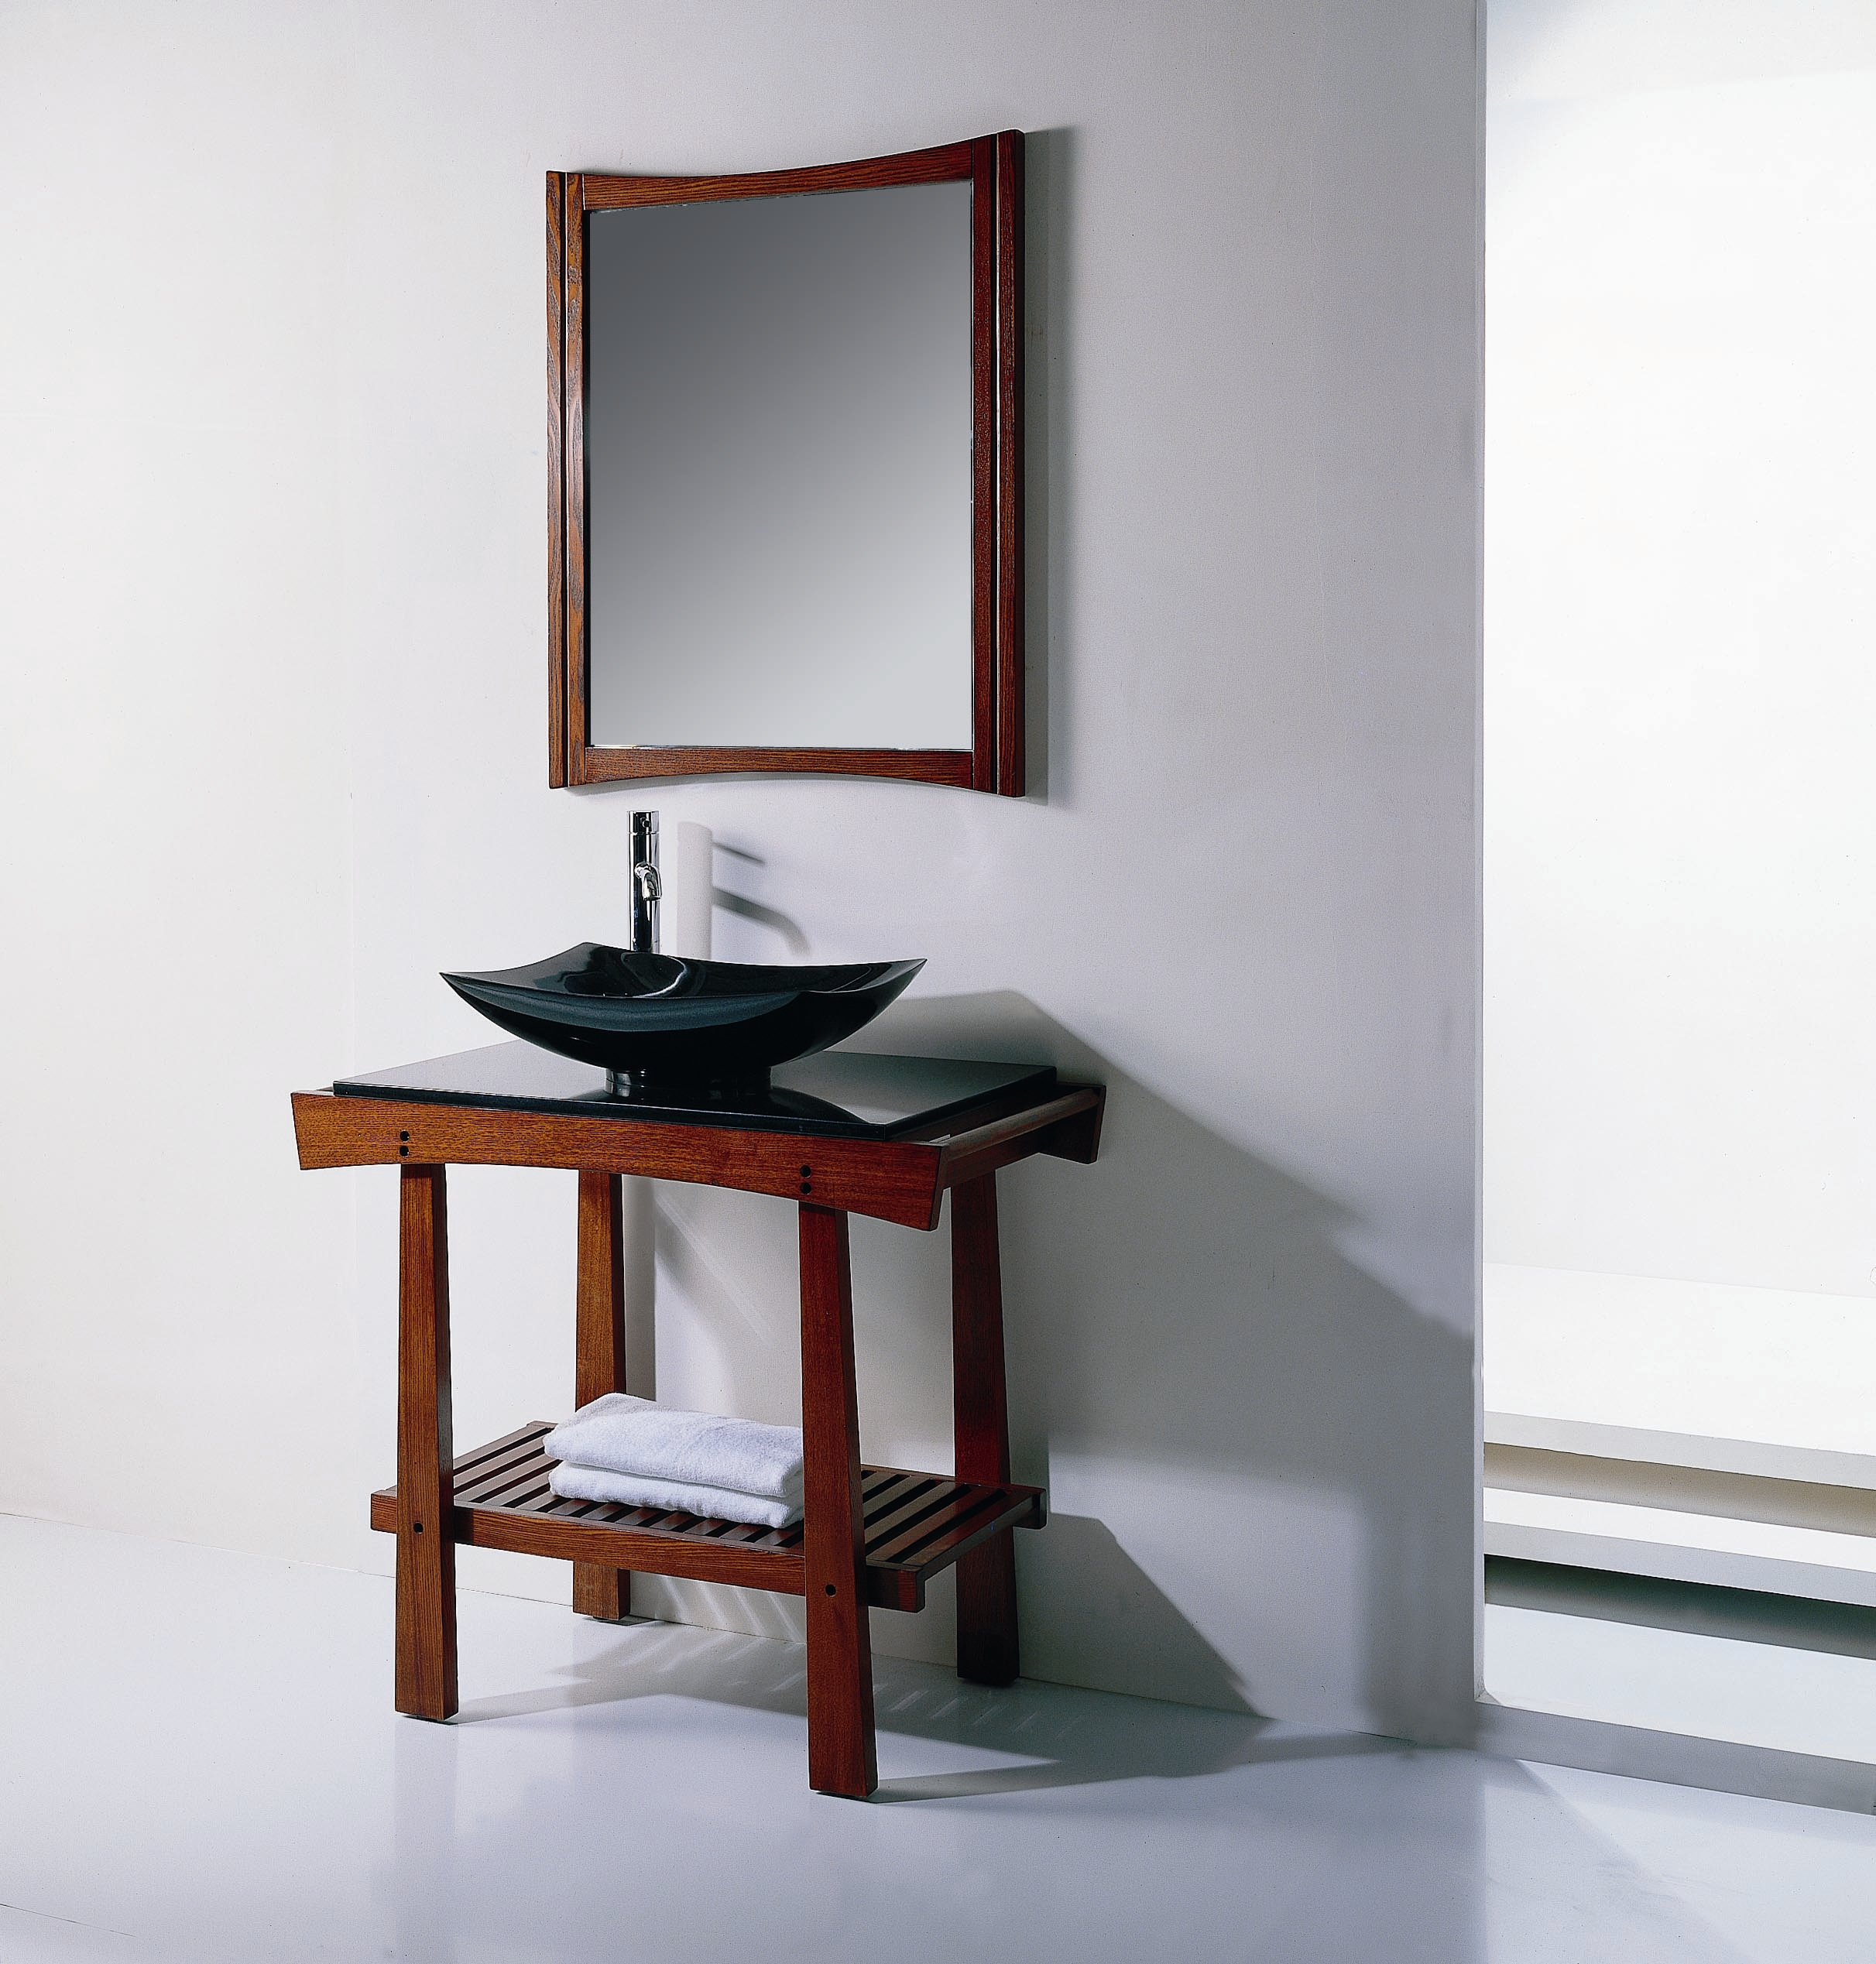 Japan Style Bathroom Vanity Furniture (Image 8 of 17)